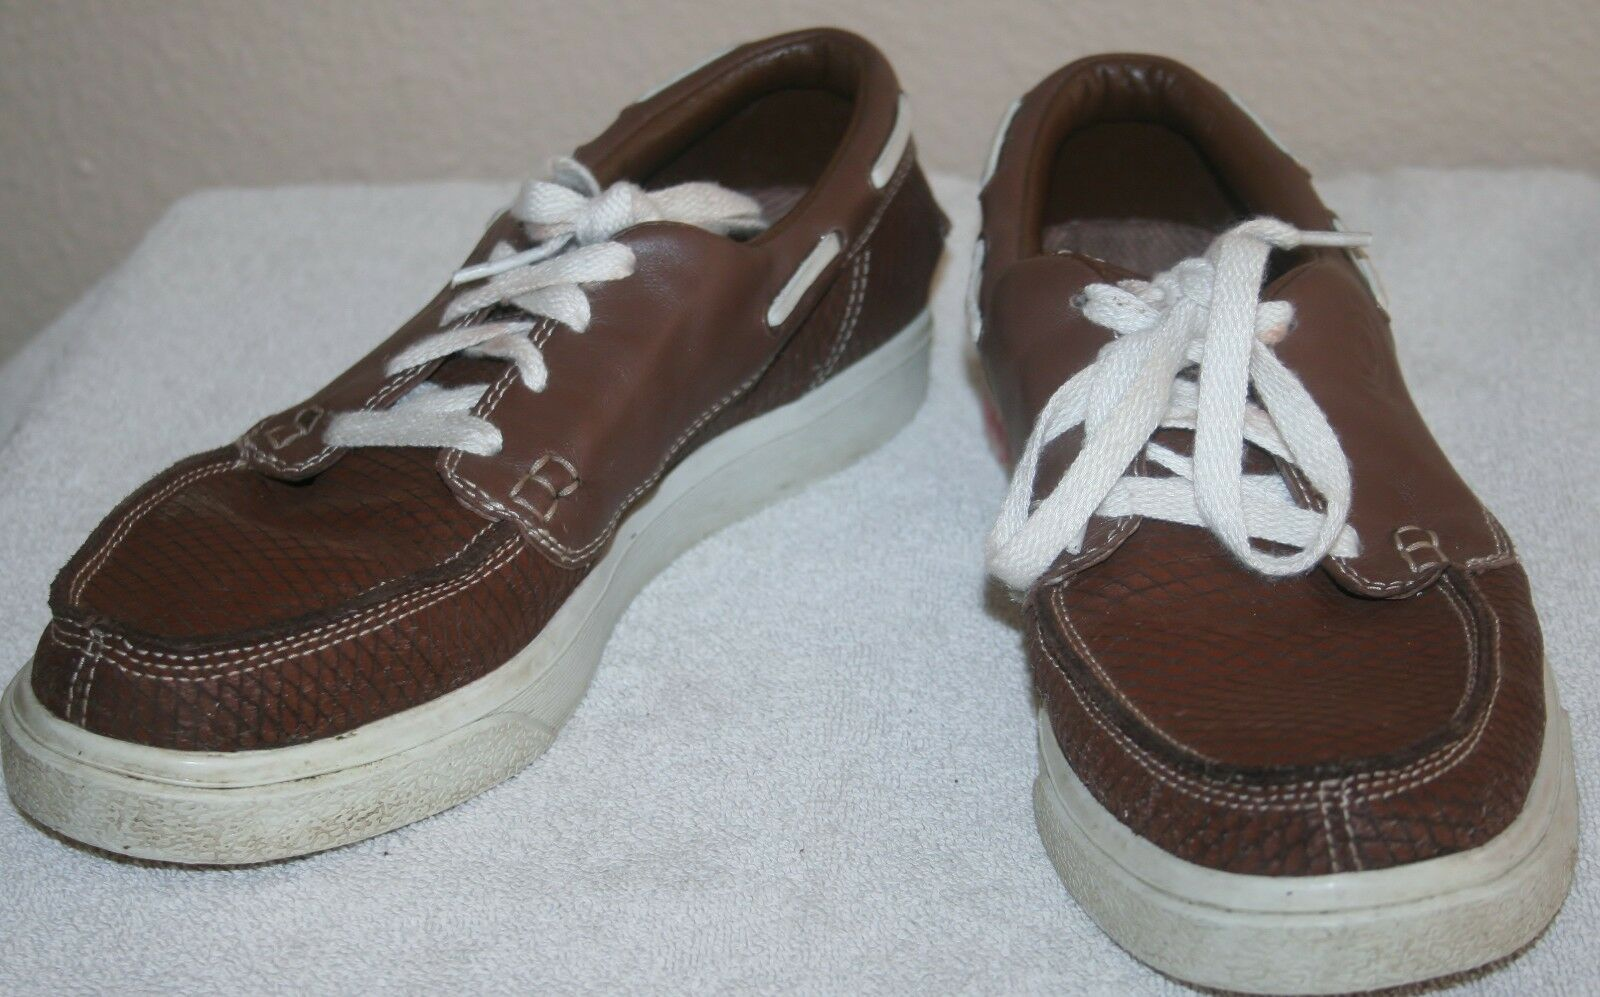 r- SHOES MENS SZ 8 LACE UP BROWN LEATHER LOAFERS LOOK GREAT EXCELLENT